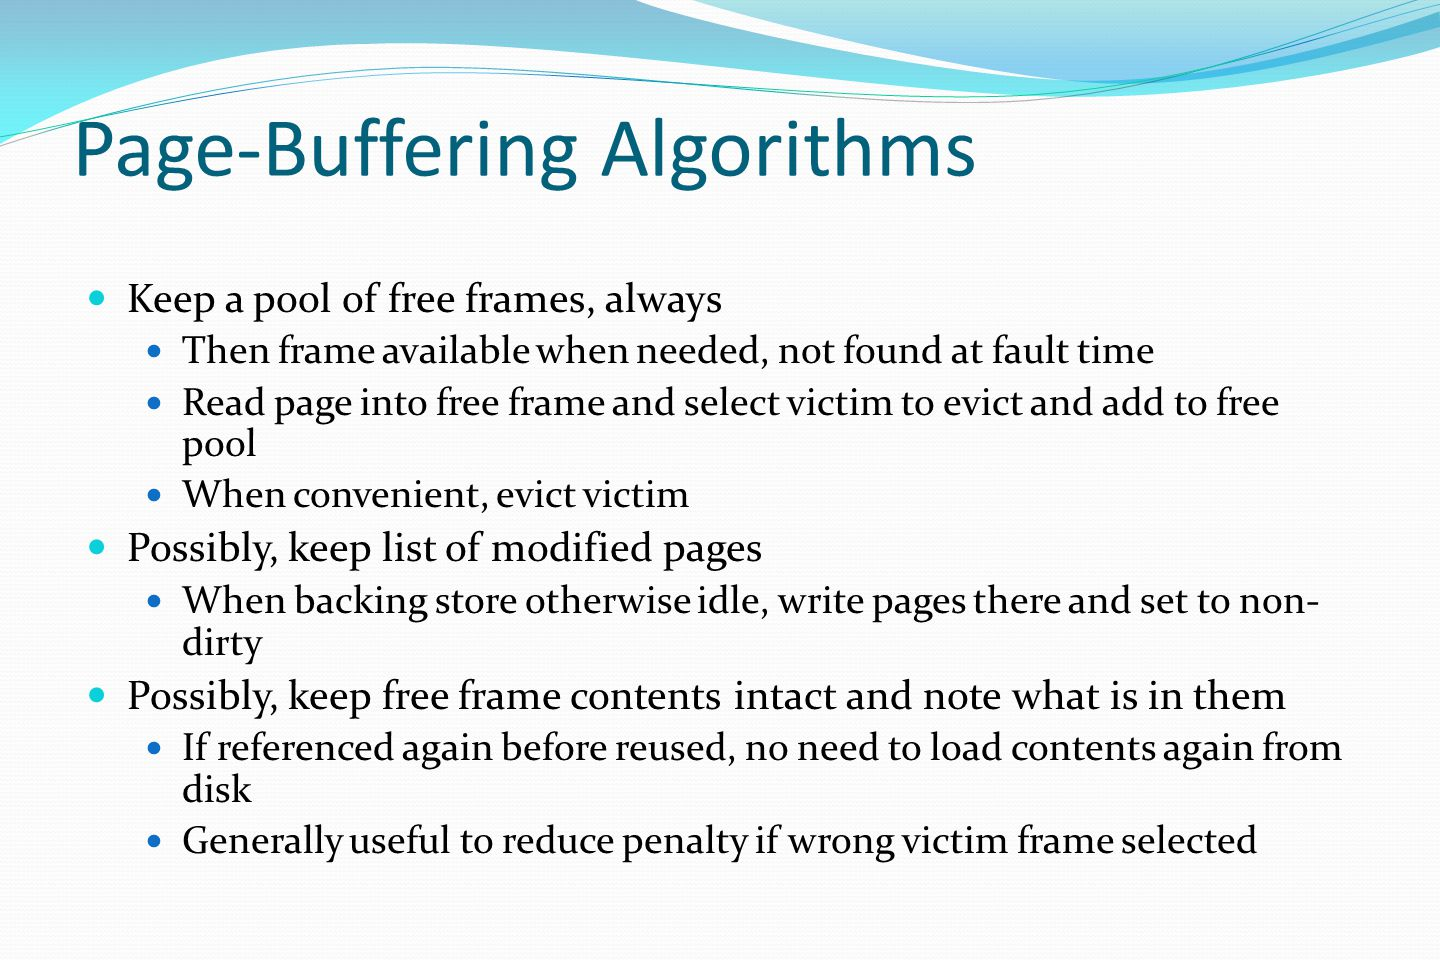 Page-Buffering Algorithms Keep a pool of free frames, always Then frame available when needed, not found at fault time Read page into free frame and select victim to evict and add to free pool When convenient, evict victim Possibly, keep list of modified pages When backing store otherwise idle, write pages there and set to non- dirty Possibly, keep free frame contents intact and note what is in them If referenced again before reused, no need to load contents again from disk Generally useful to reduce penalty if wrong victim frame selected